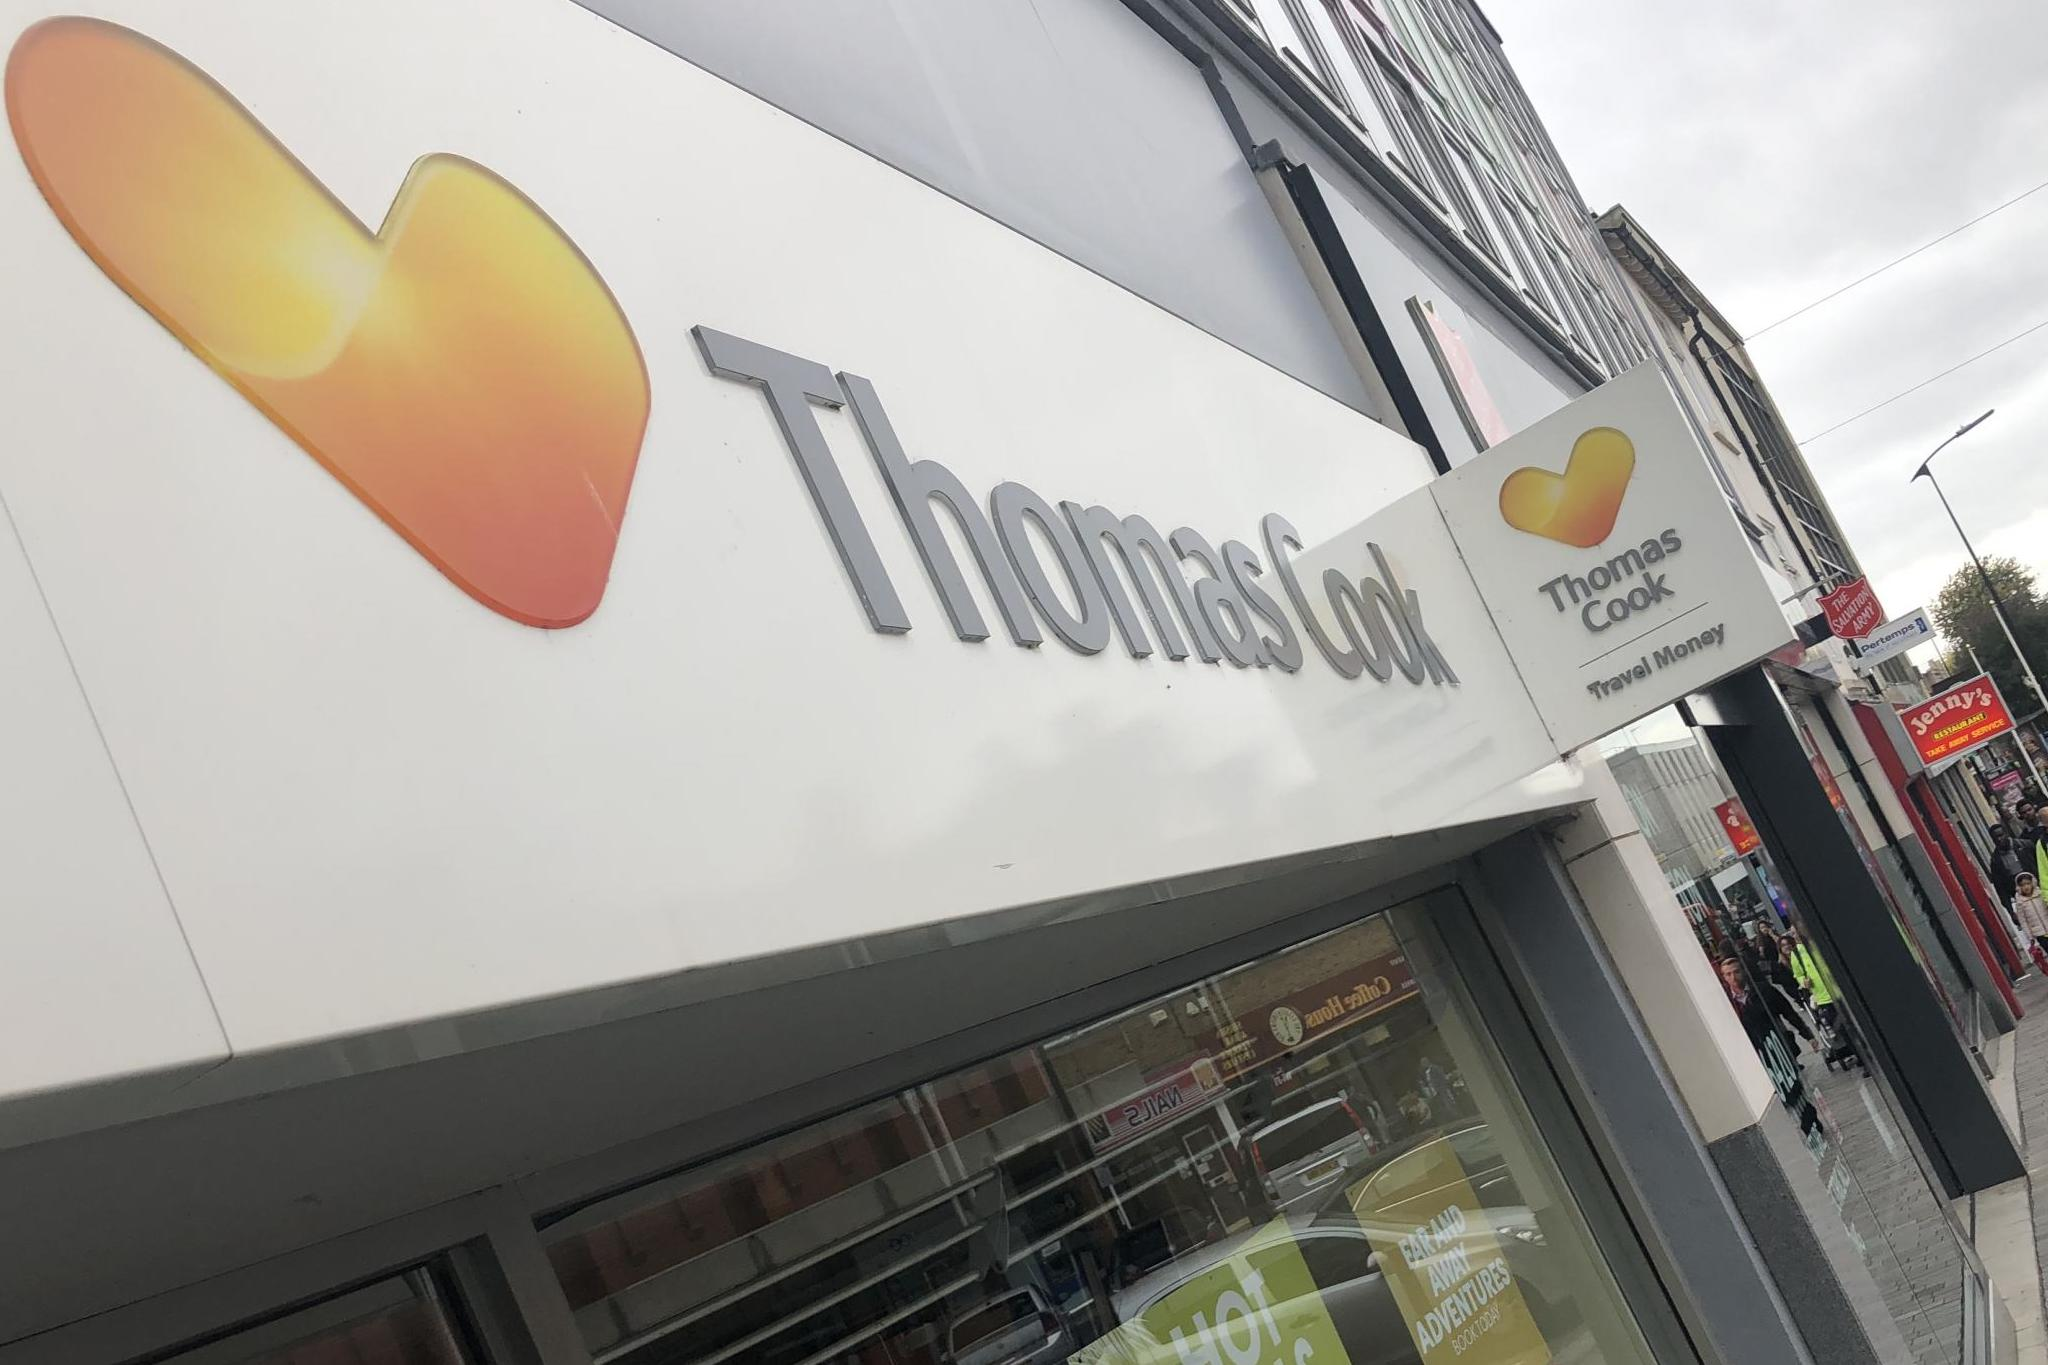 Thomas Cook collapse: former bosses start fundraising to help jobless staff